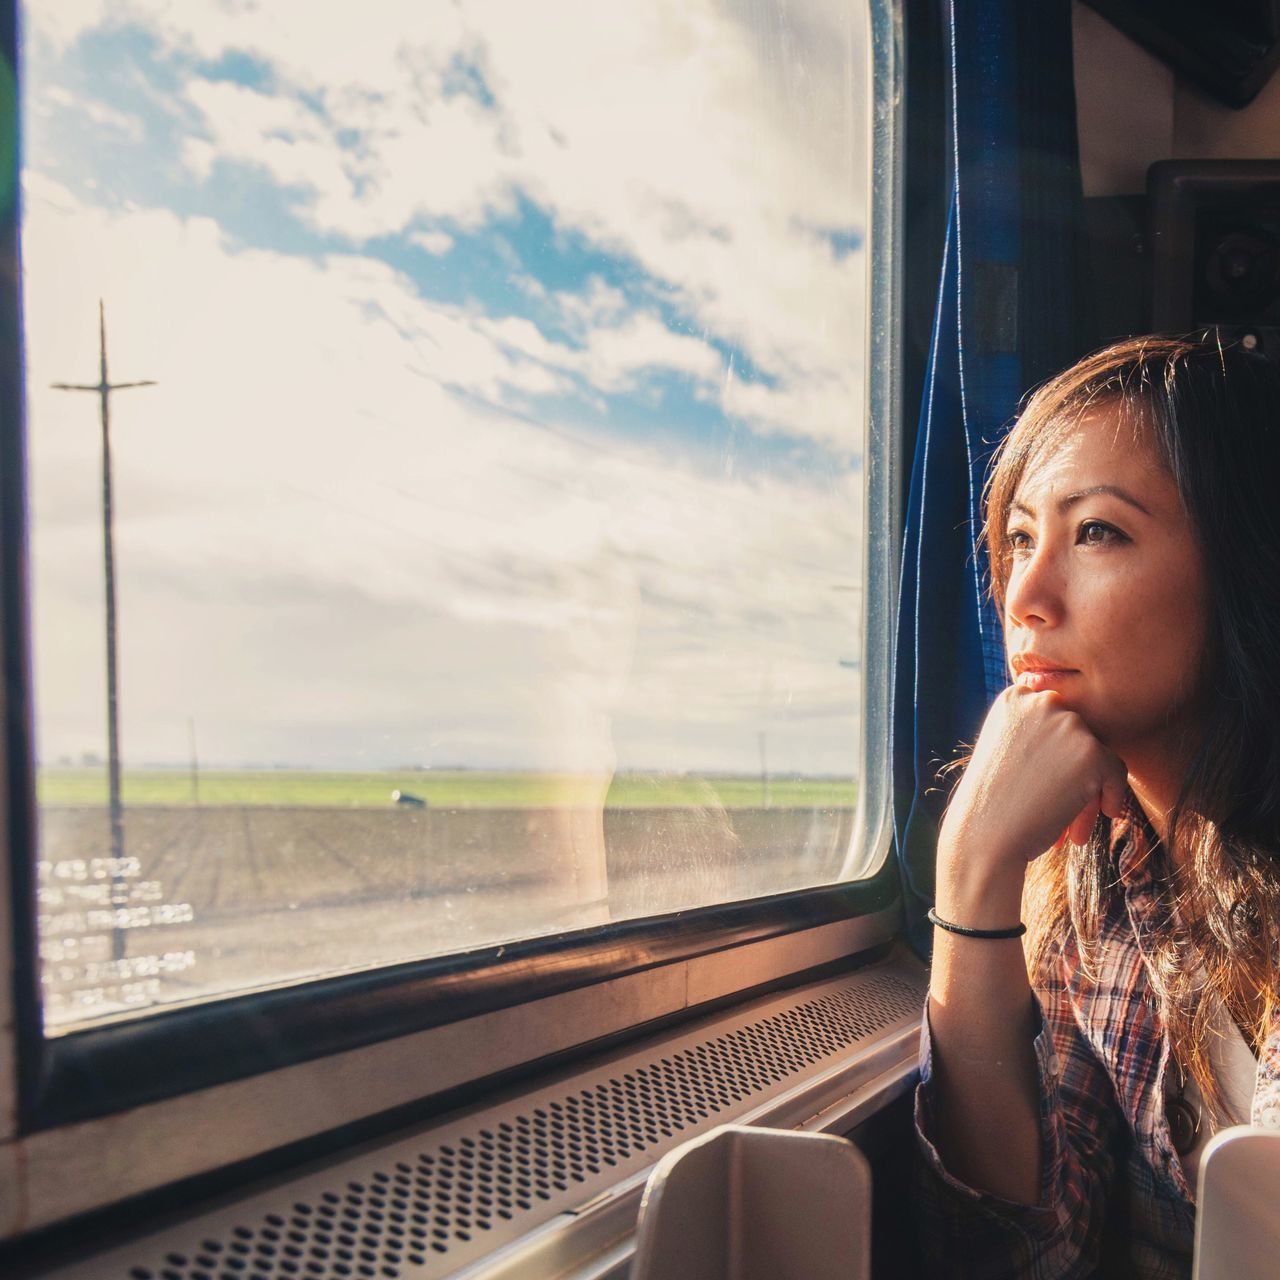 On a train watching scenery Travel Train Woman Asian  Adventure Daydream Watching Happy Content Excited Traveling